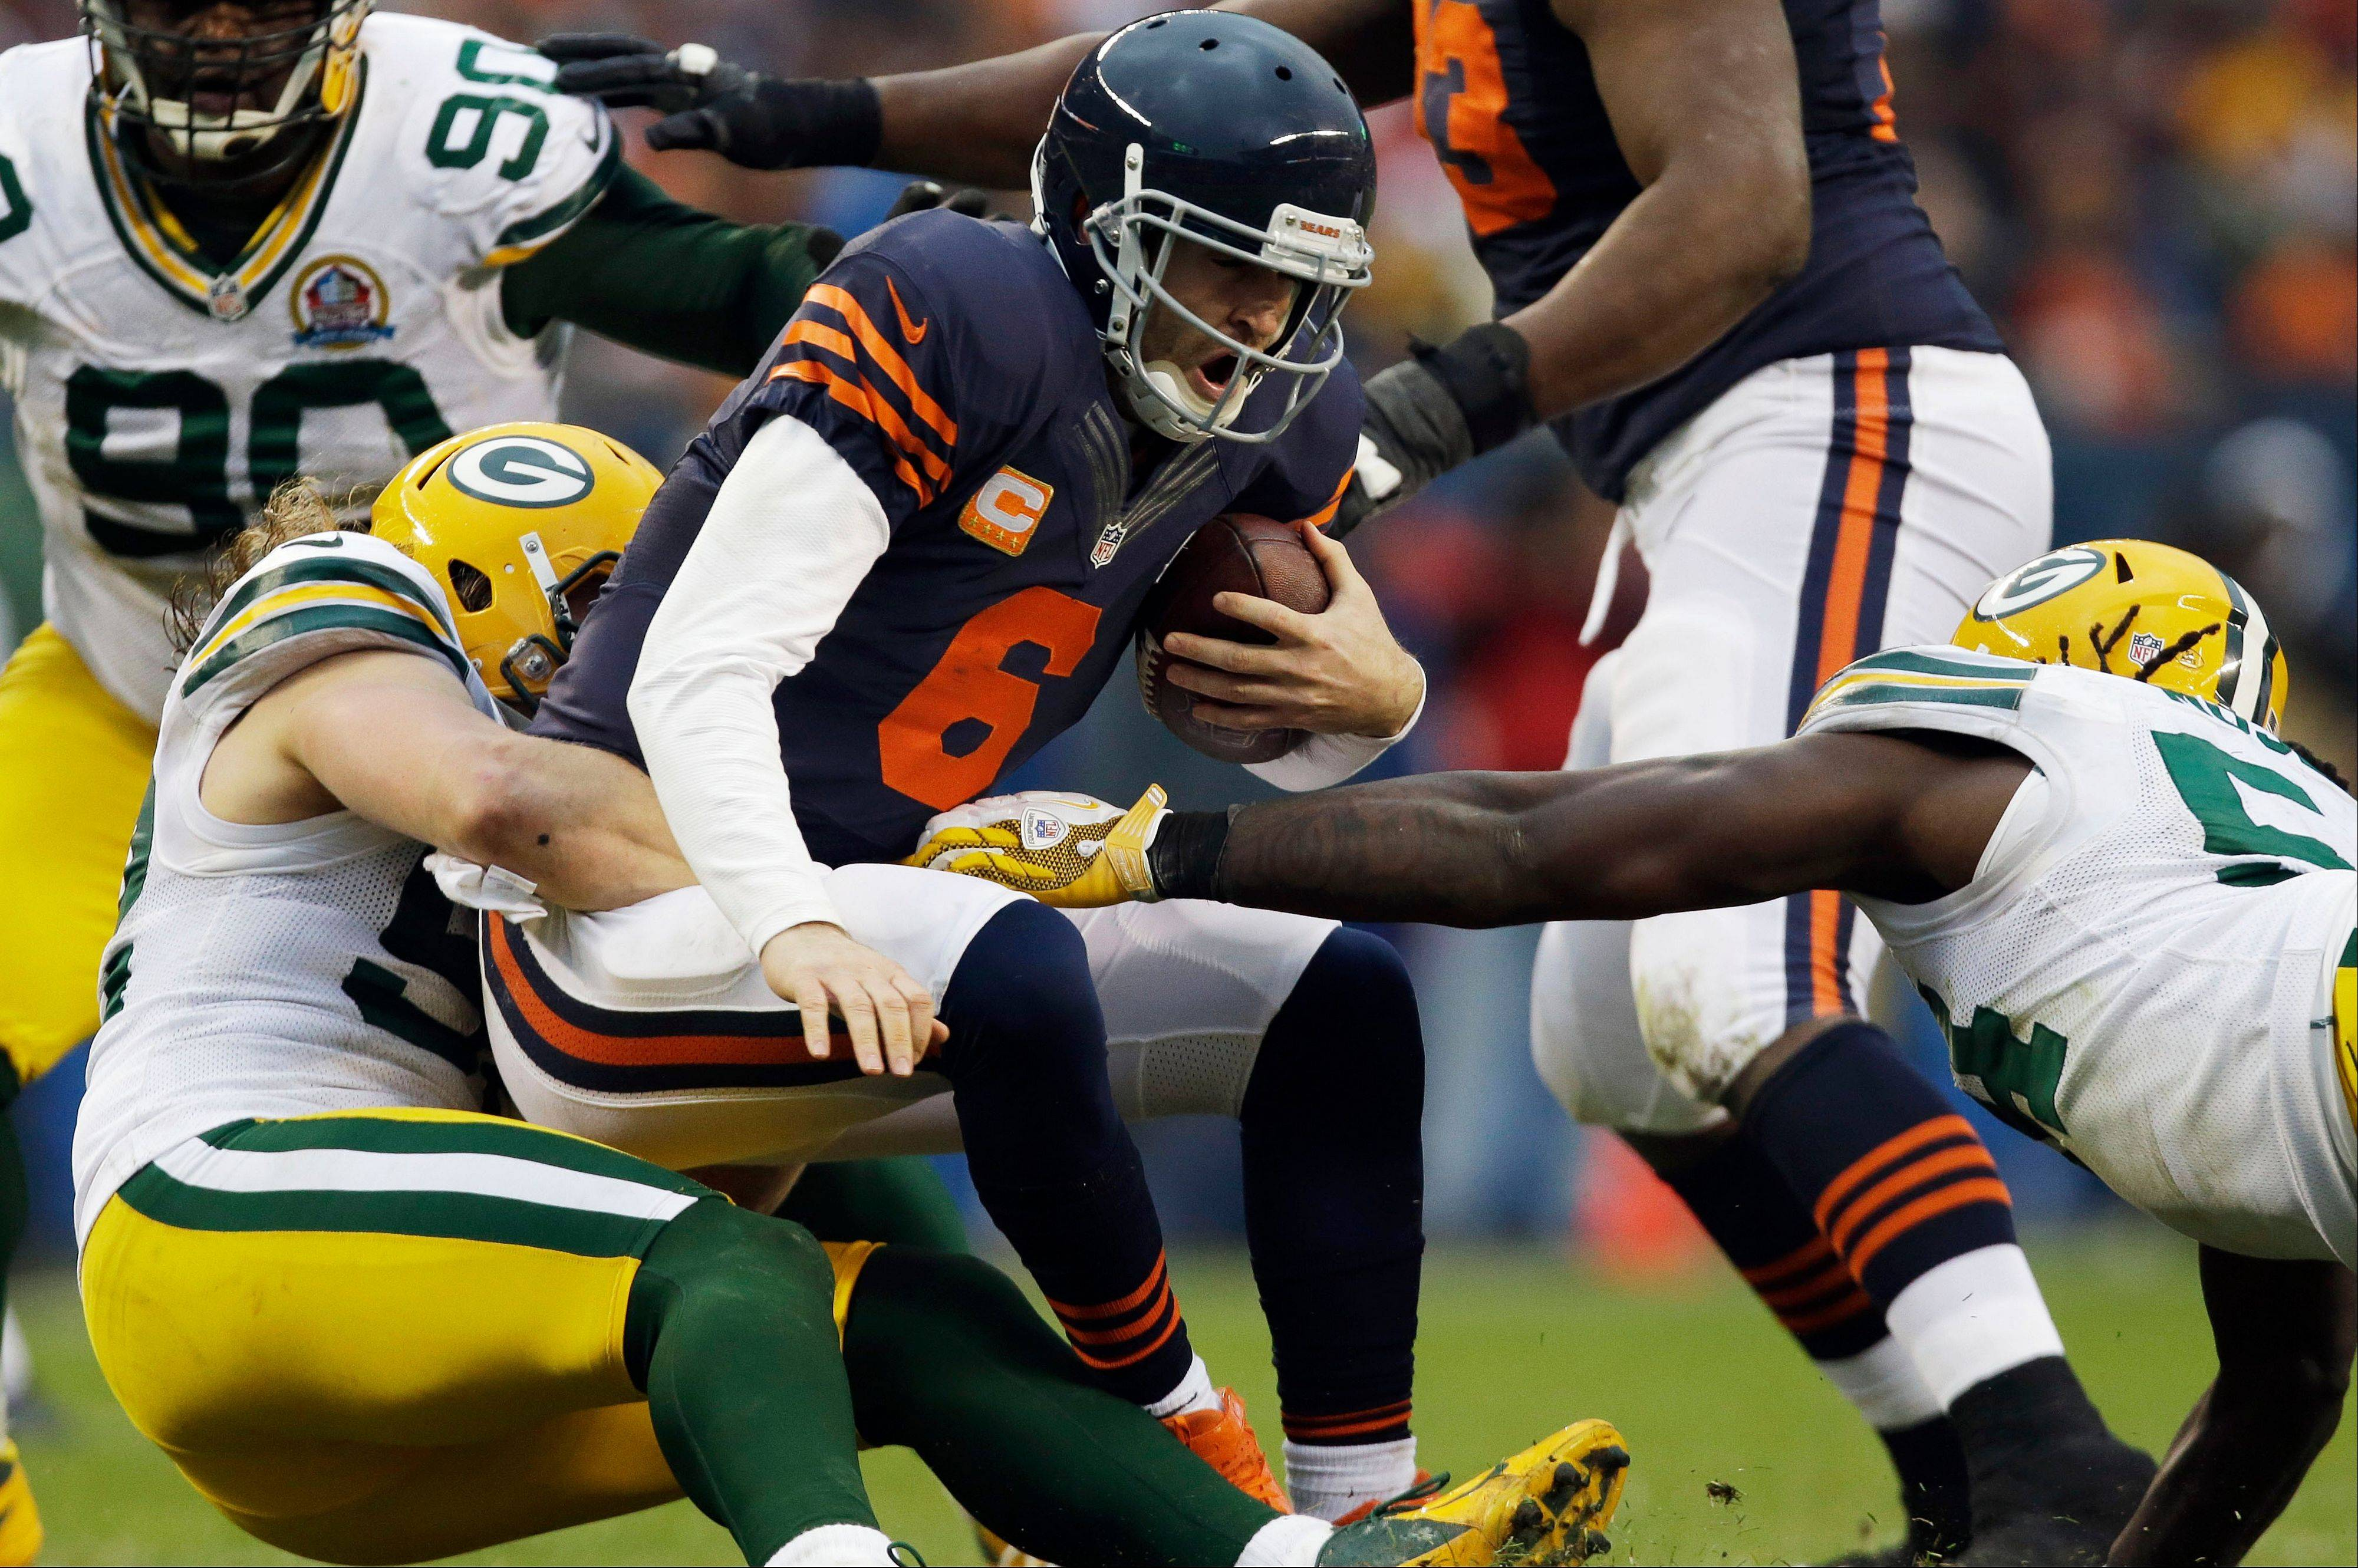 Chicago Bears quarterback Jay Cutler (6) is sacked by Green Bay Packers linebacker Clay Matthews, left, in the second half of an NFL football game in Chicago, Sunday, Dec. 16, 2012. At right is Packers linebacker Dezman Moses. The Packers won 21-13 to clinch the NFC North division title.